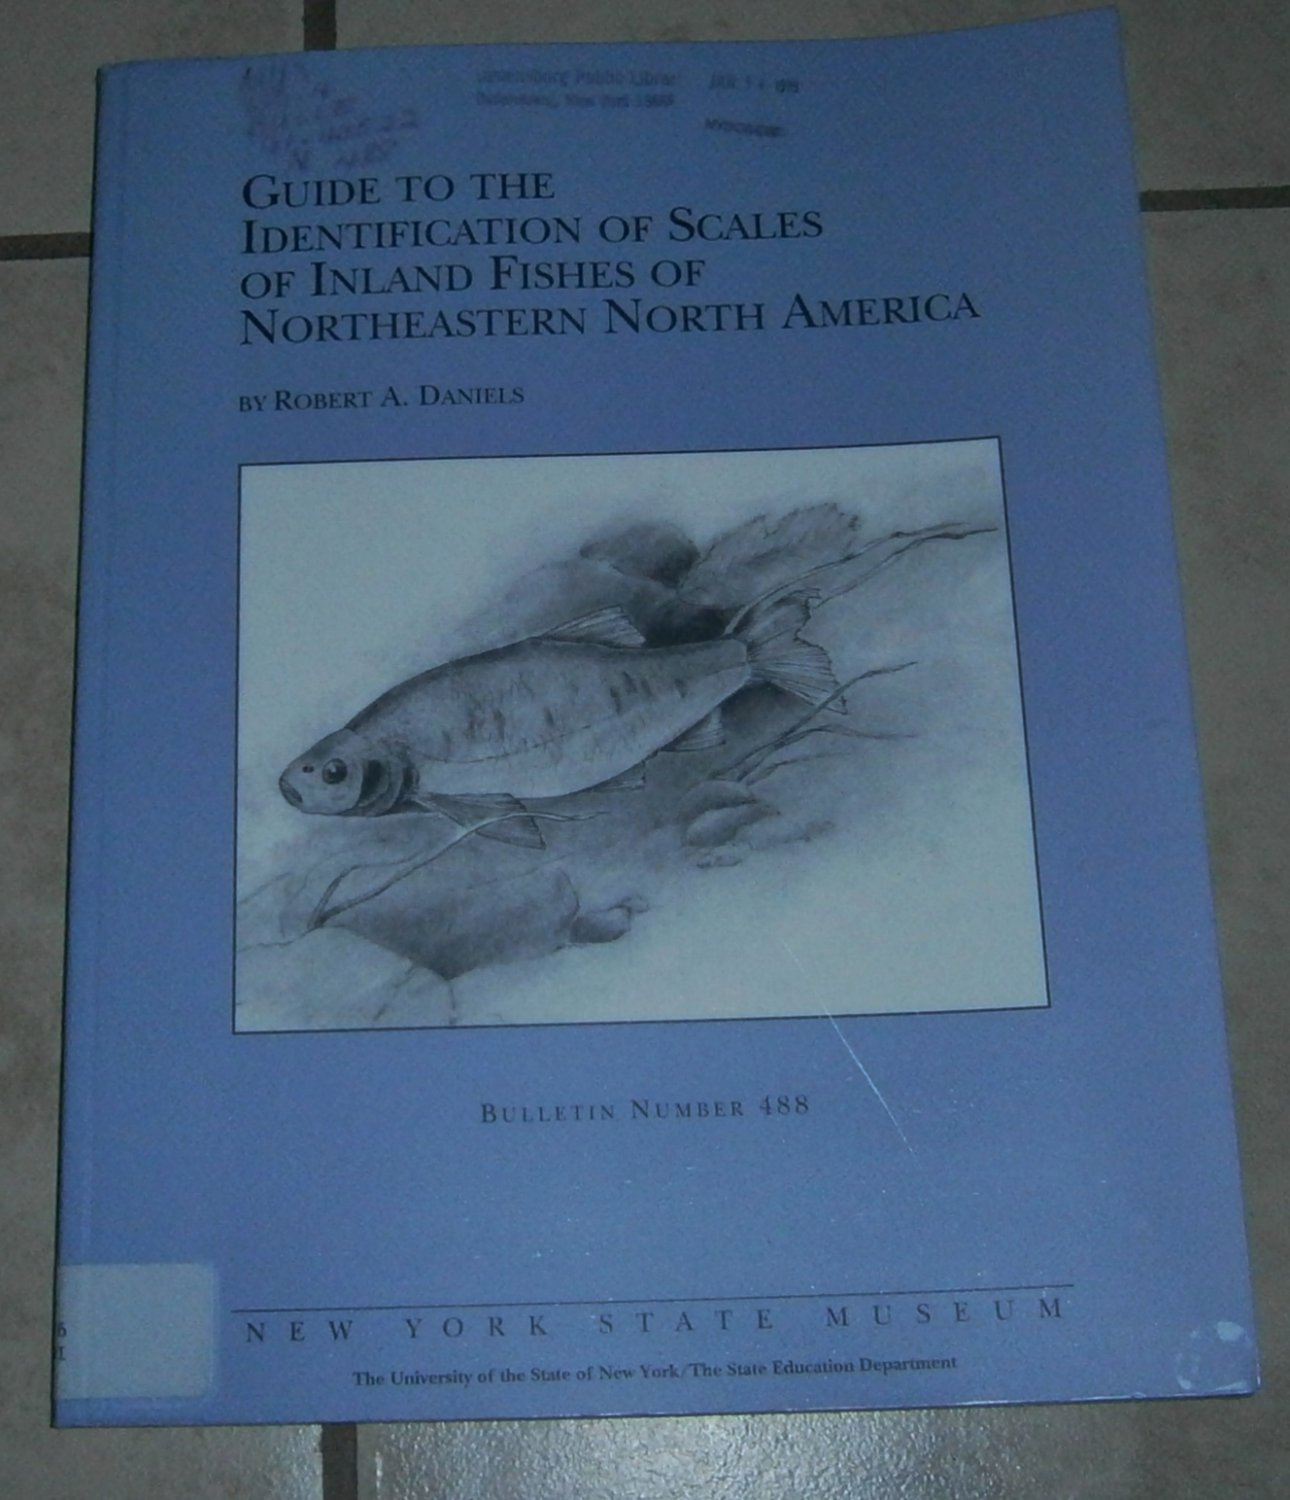 Guide to the Identification of Scales Inland Fishes of Northeastern North America